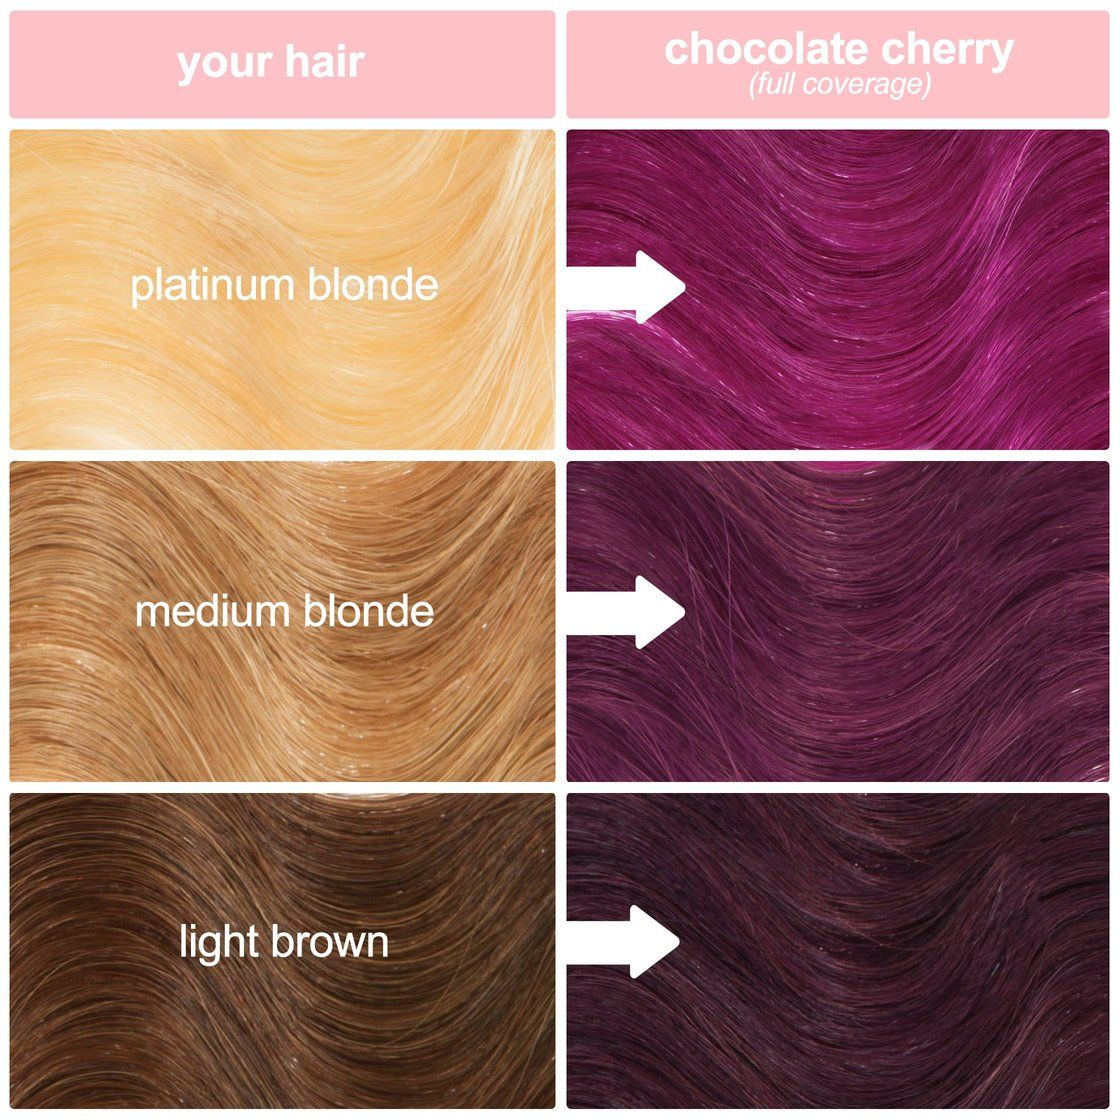 Chocolate Cherry Hair Color Burgundy Red Cherry Hair Colors Unicorn Hair Dye Cherry Hair